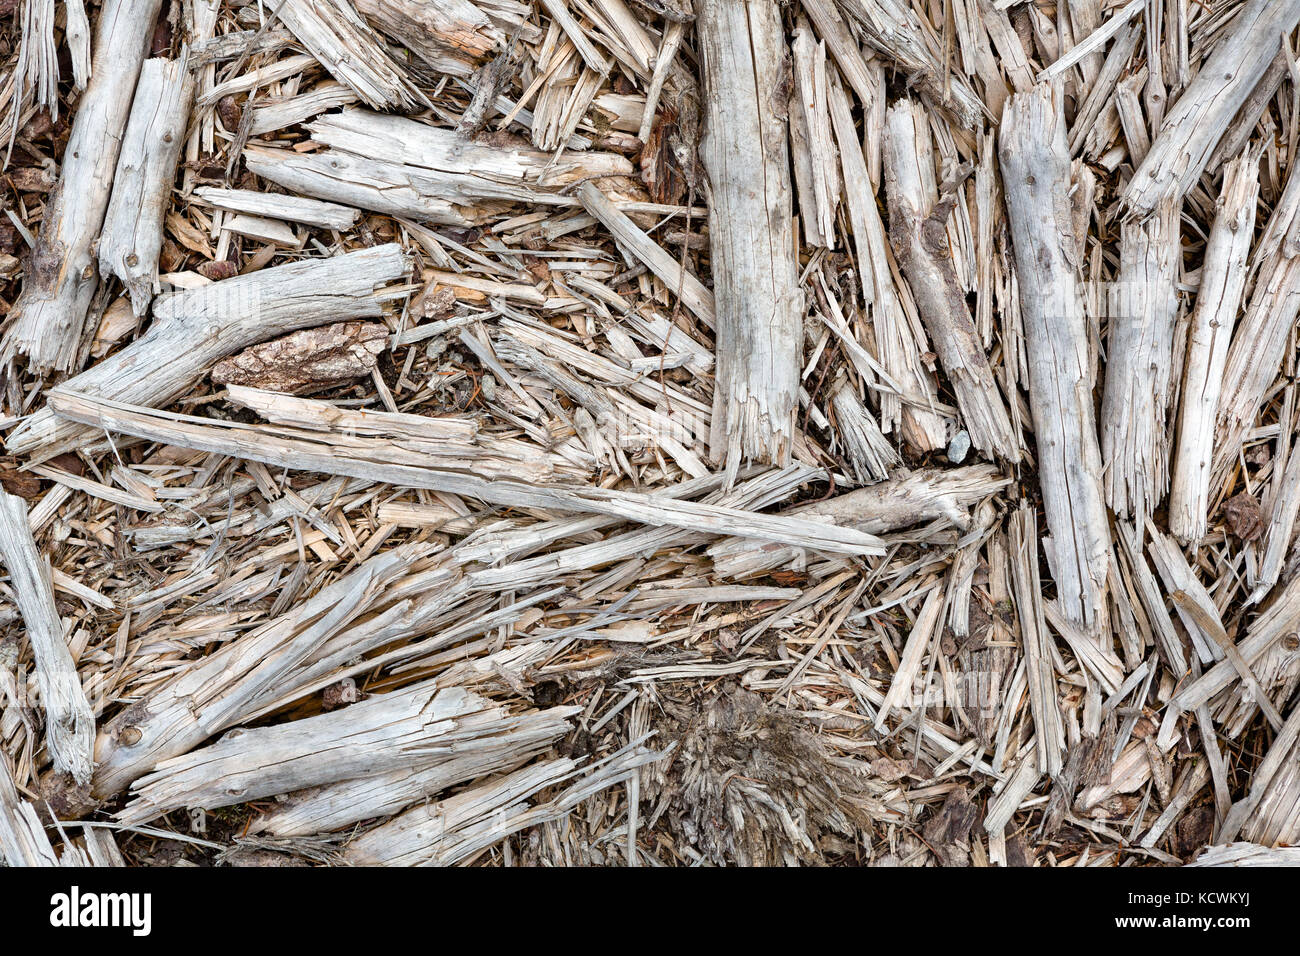 Abstract top view of old branches, sticks and twigs lying on the ground. Stock Photo